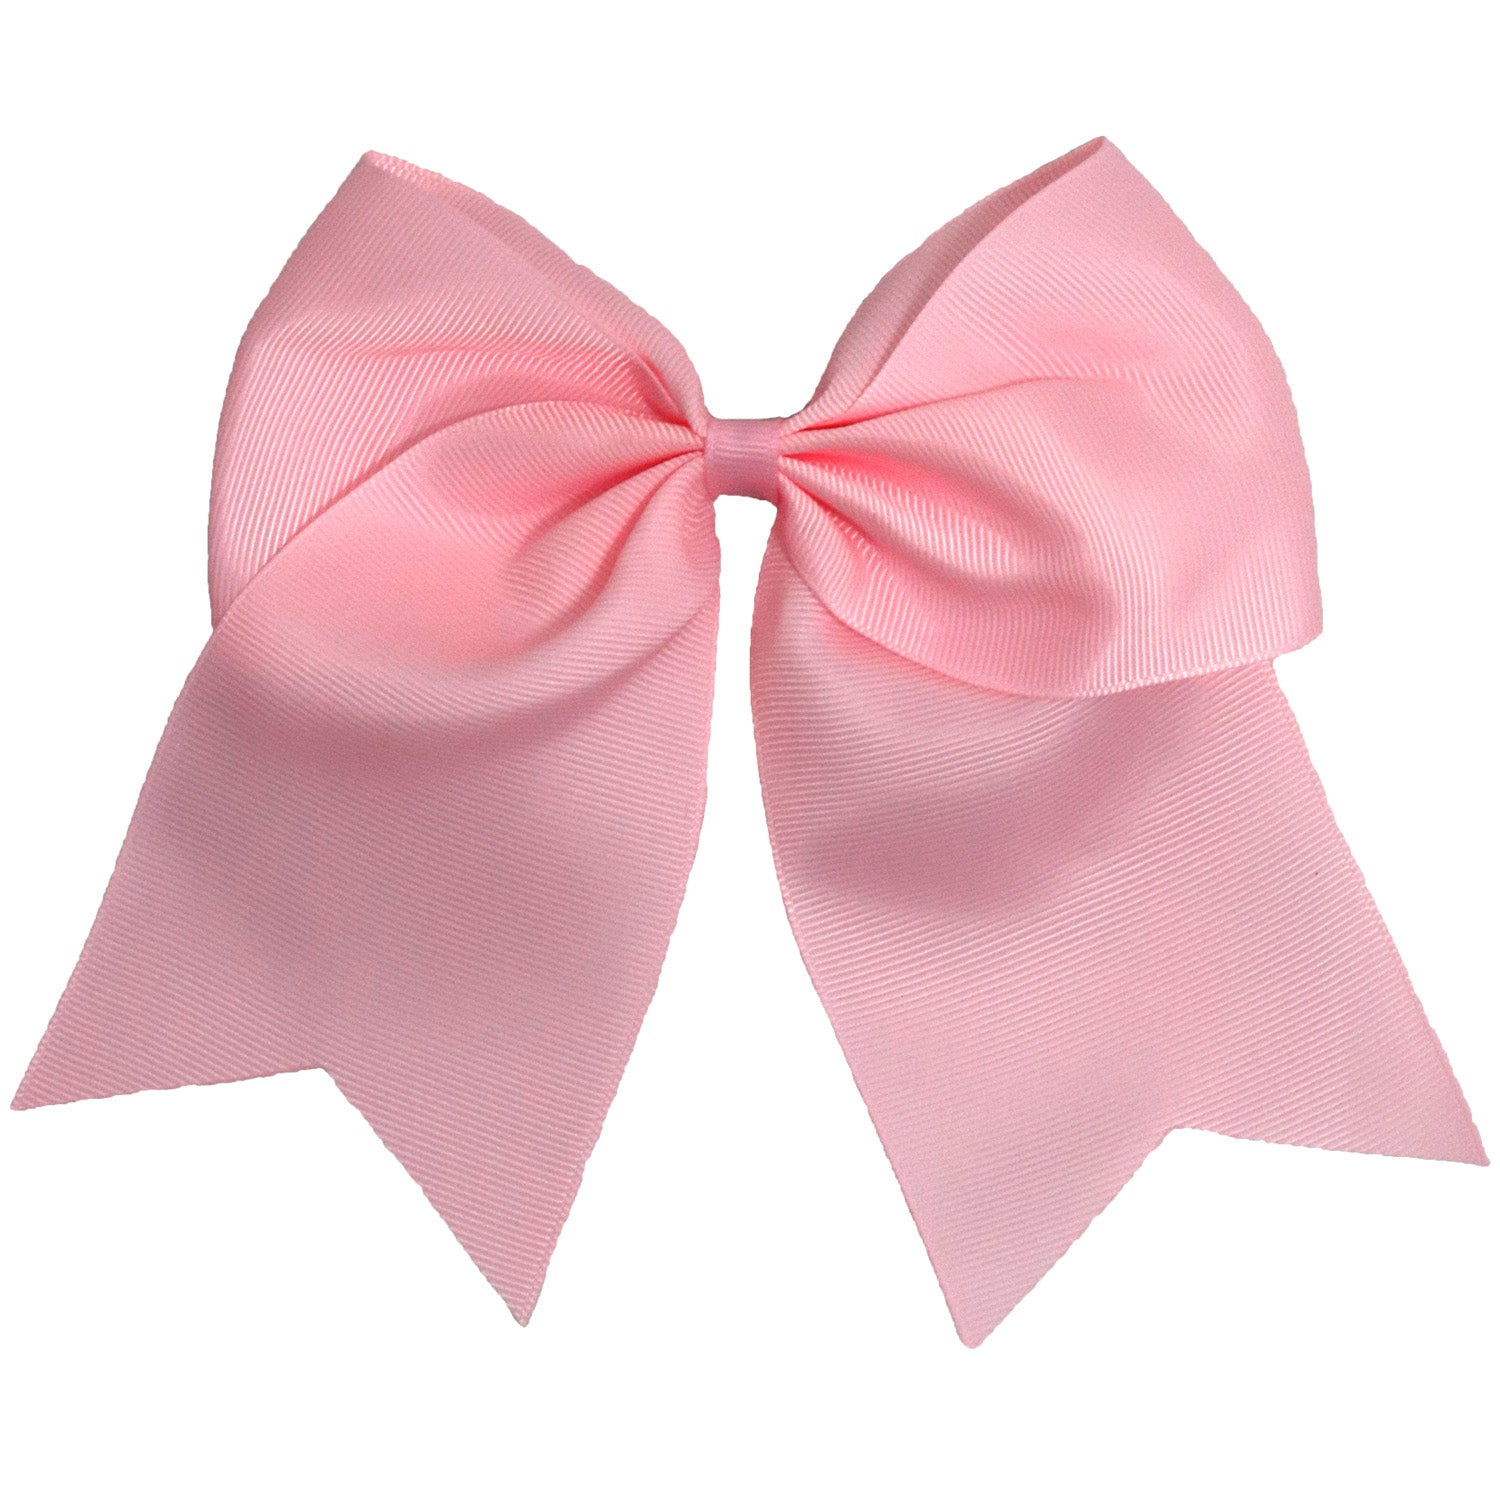 1 Light Pink Cheer Bow For Girls 7 Large Hair Bows With Ponytail Hold Will continue to be a loyal customer. 1 light pink cheer bow for girls 7 large hair bows with ponytail holder ribbon